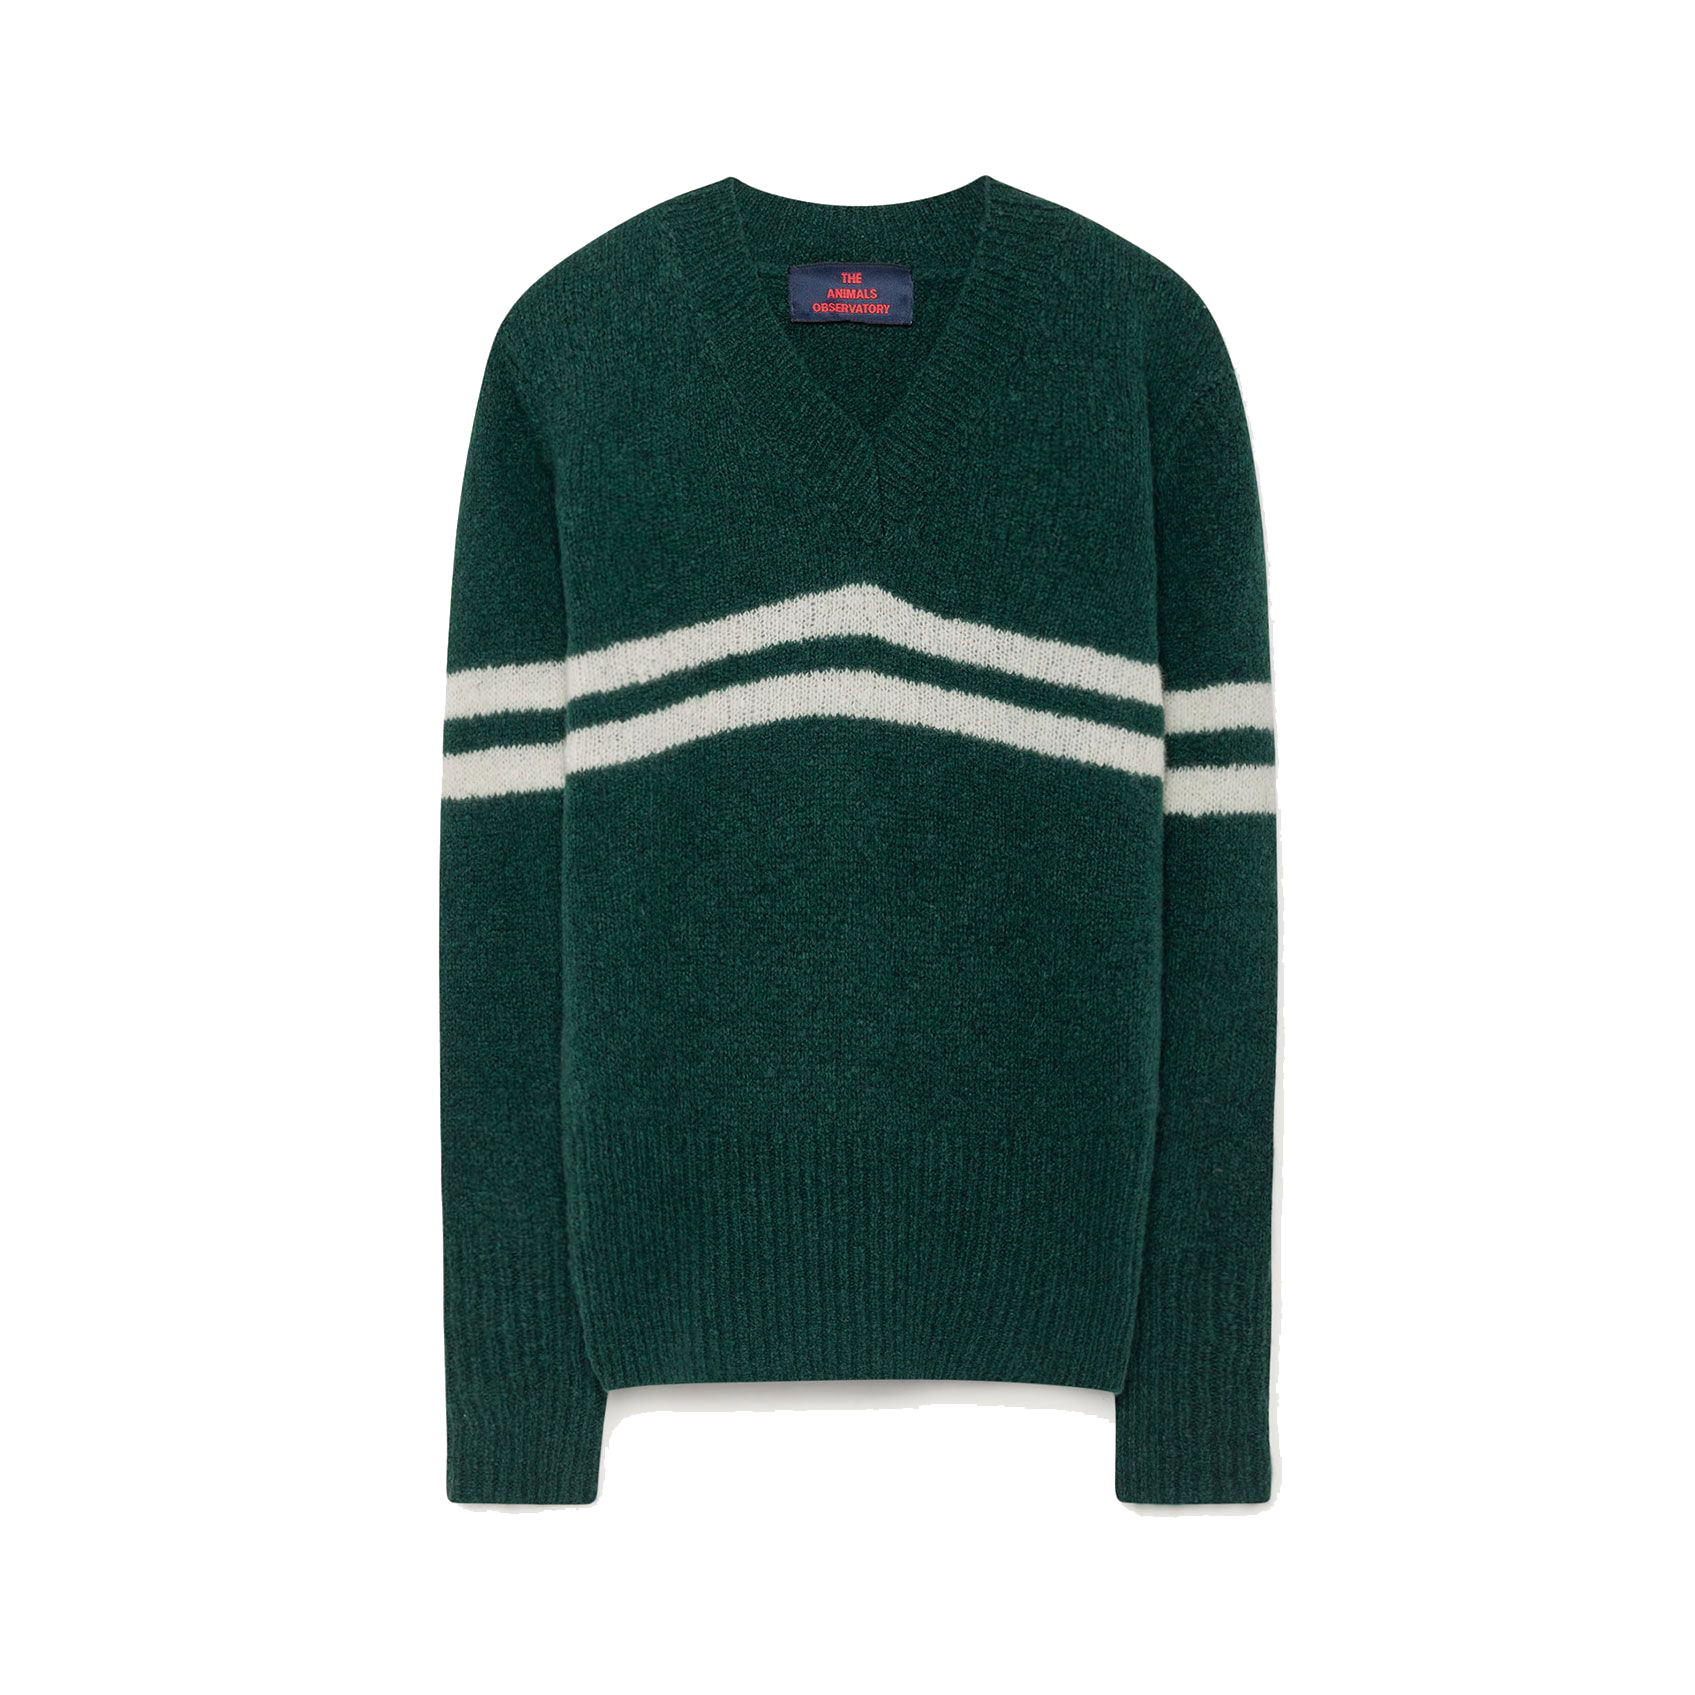 The Animals Observatory Green Toucan Sweater